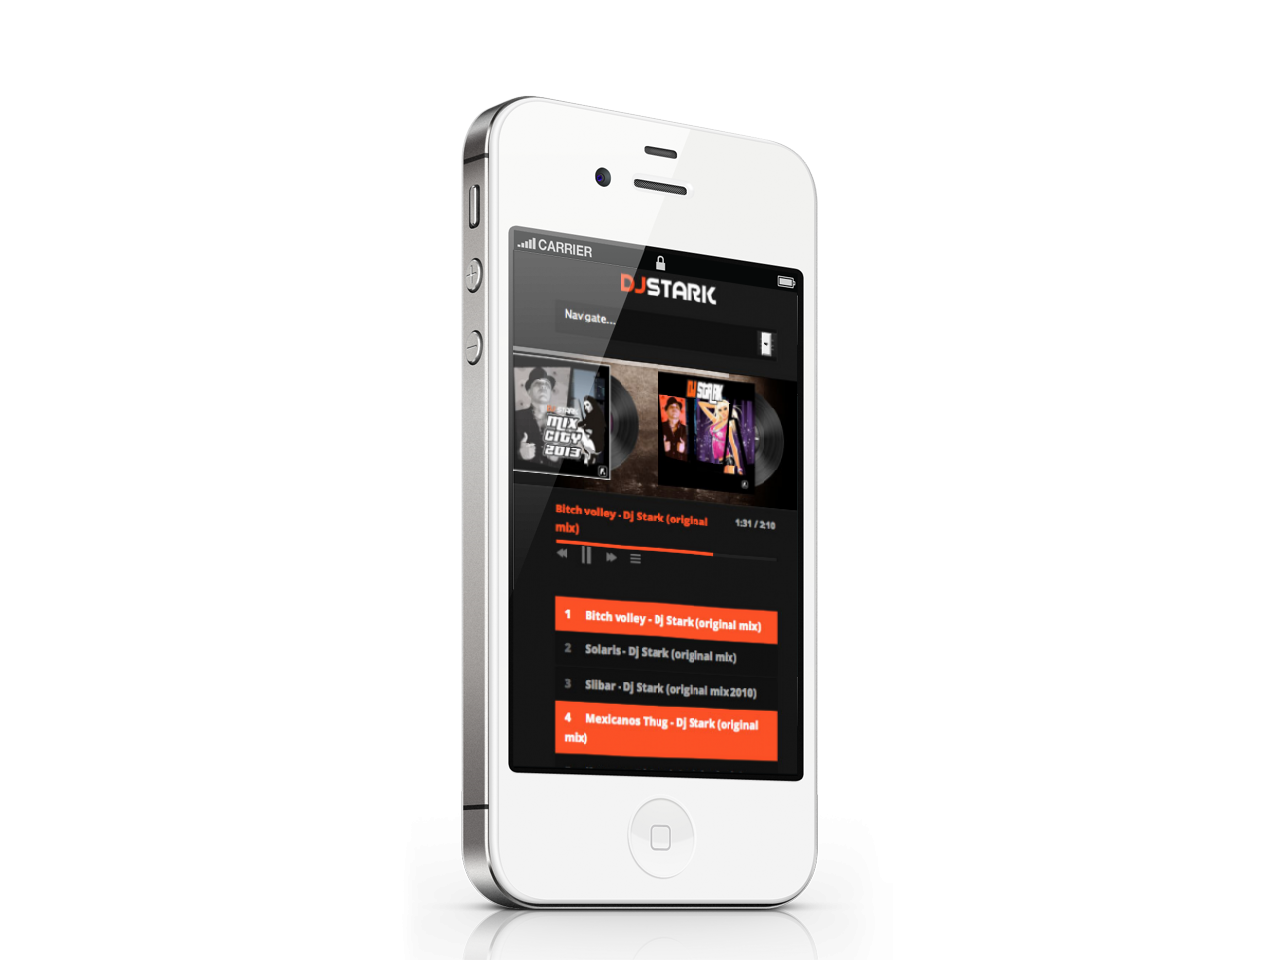 Site en Version iPhone 4s